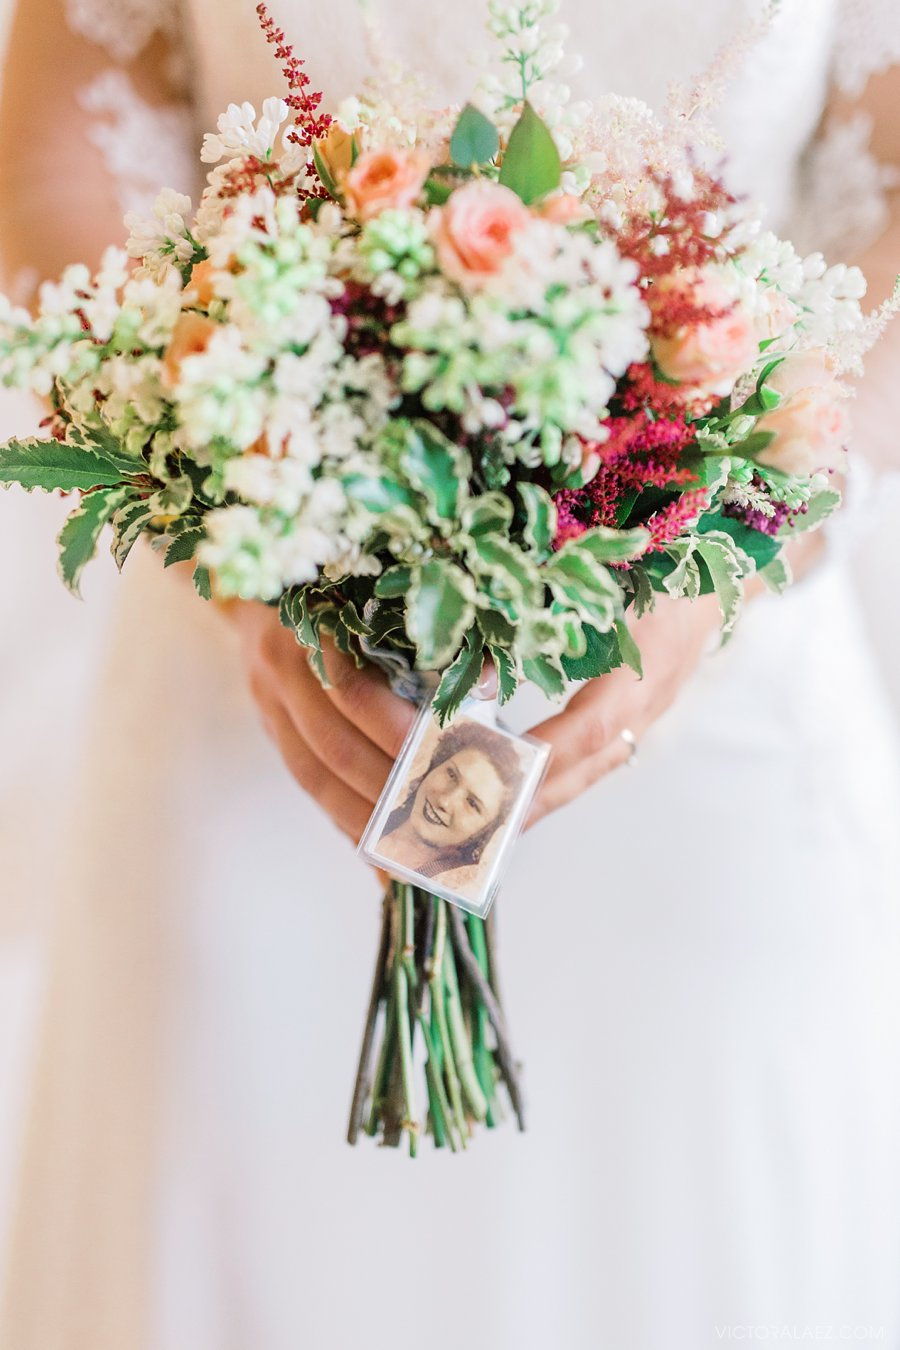 Beautiful Bridal Bouquet with a Photo of a Relative to Honor her Memory. Emotive detail